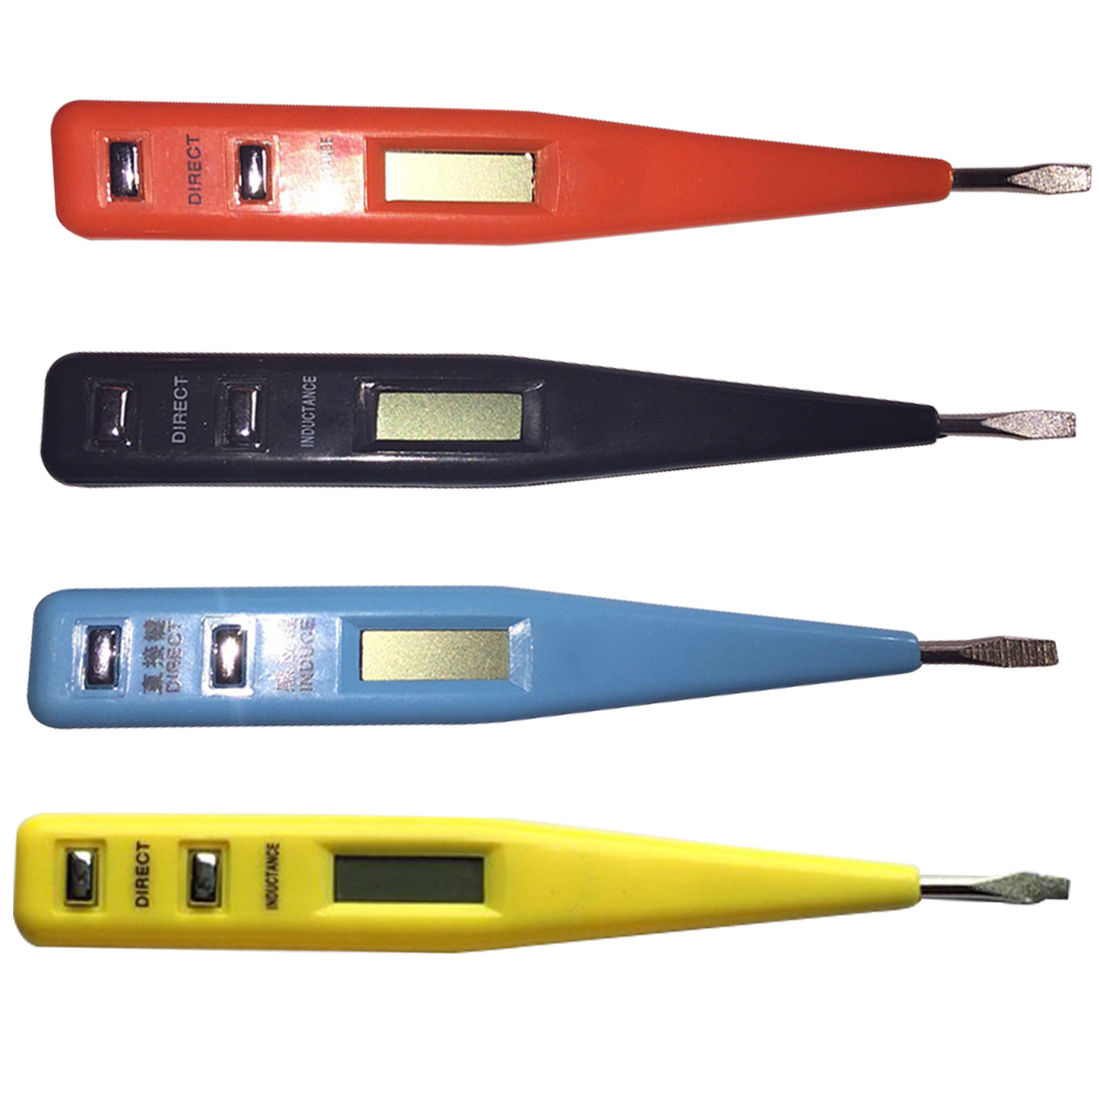 цена на Digital Test Pencil Multifunction AC DC 12-250V Multi-Sensor Electrical LCD Display Voltage Detector Test Pen Randowcolor